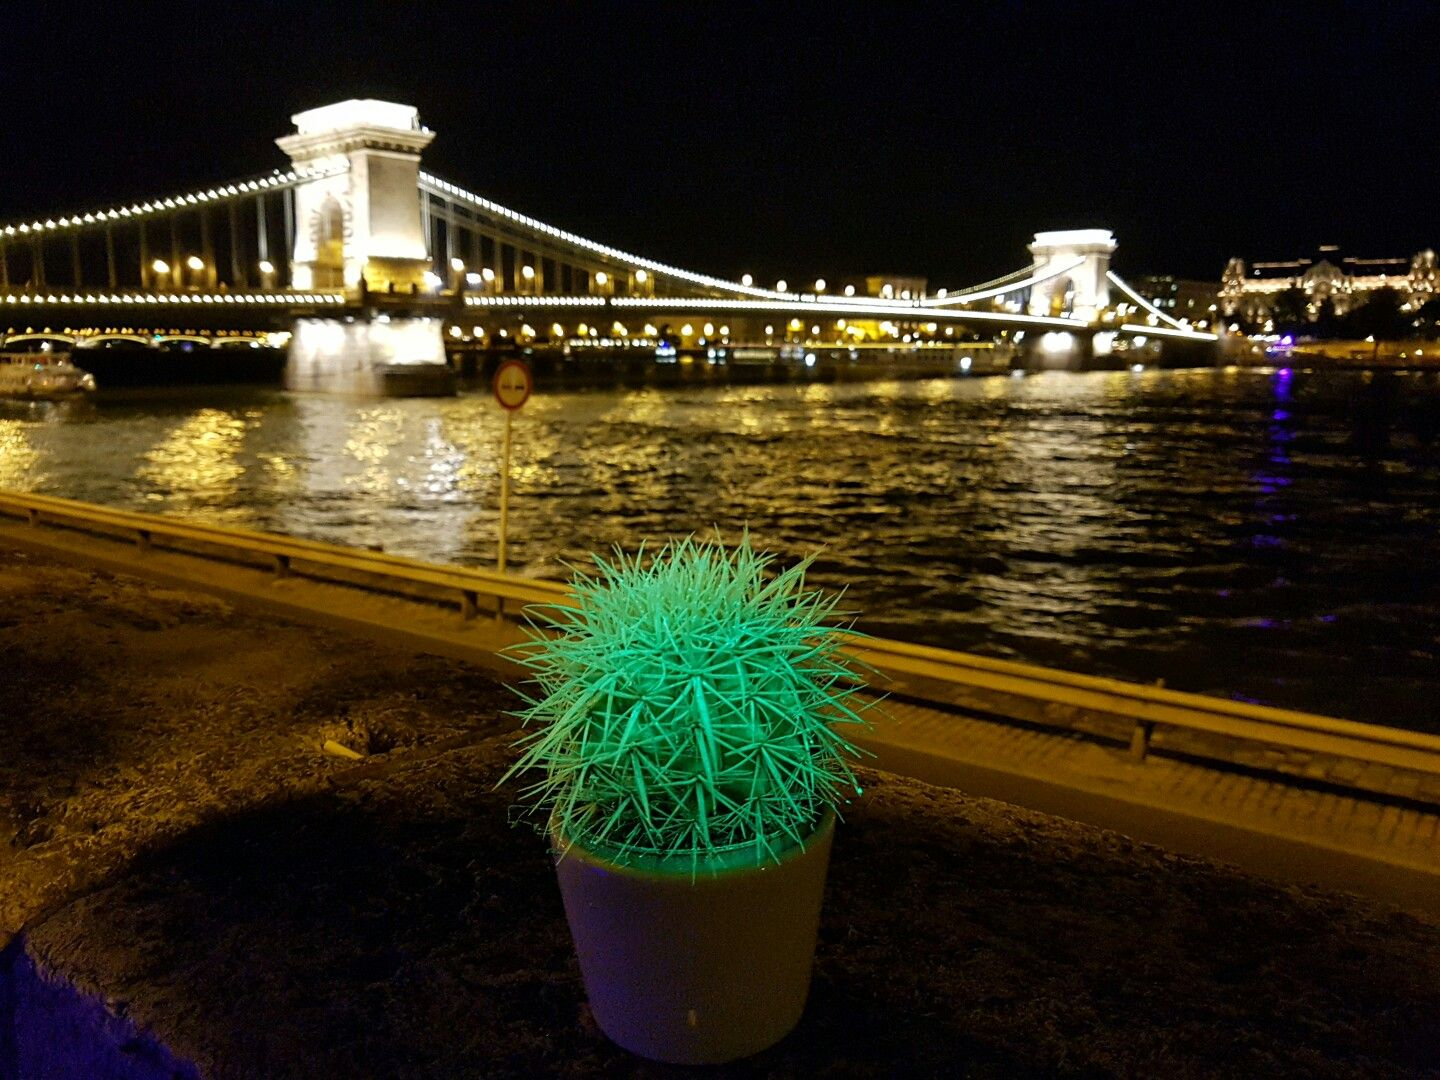 #flAVATAR Echinocactus at the Chain bridge